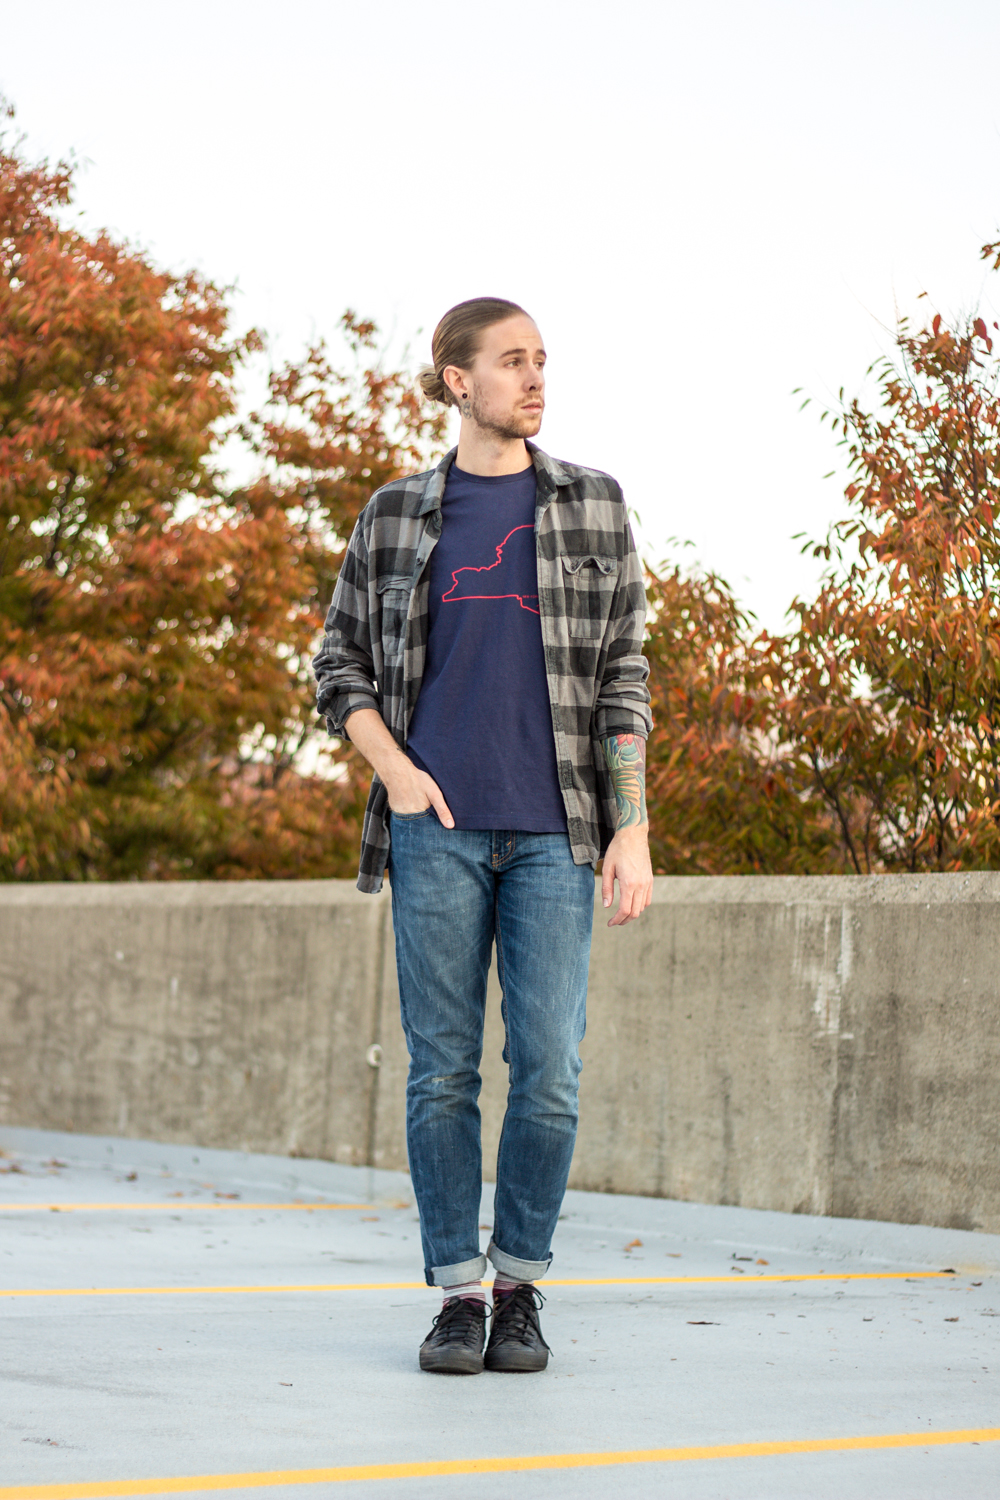 The Kentucky Gent, a men's fashion and lifestyle blogger in Louisville, Kentucky, wearing Original Penguin Tee, Devil's Rejects Plaid Shirt, Levi's 511 Jeans, Richer Poorer Socks, and Converse Chuck Taylors.